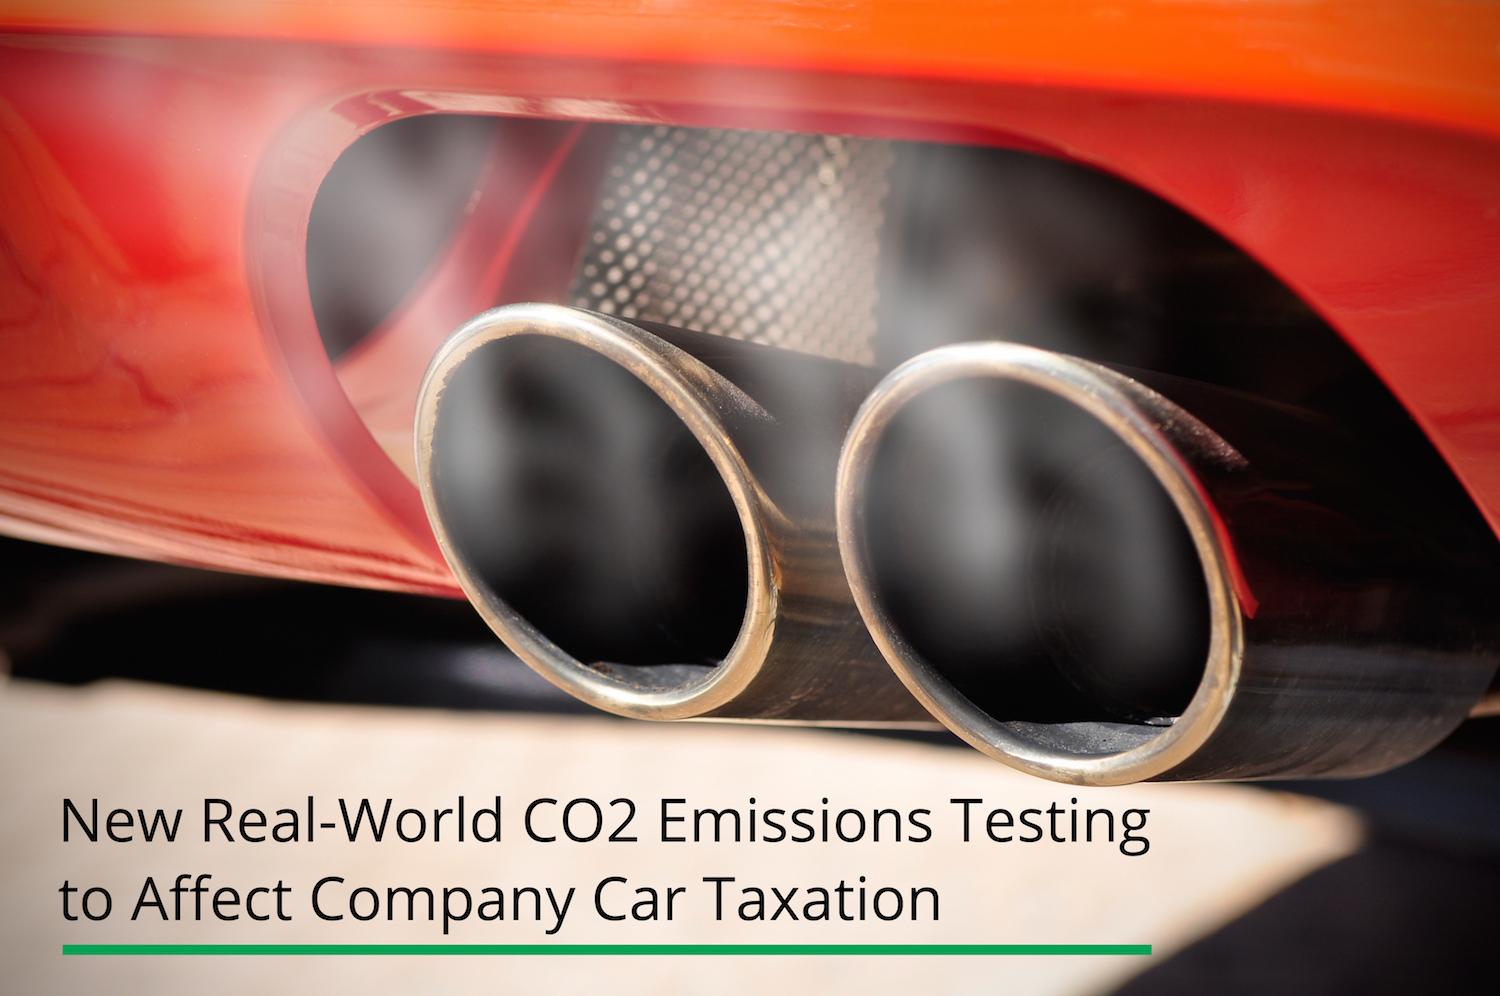 New Real-World CO2 Emissions Testing Set To Affect Company Car Taxation